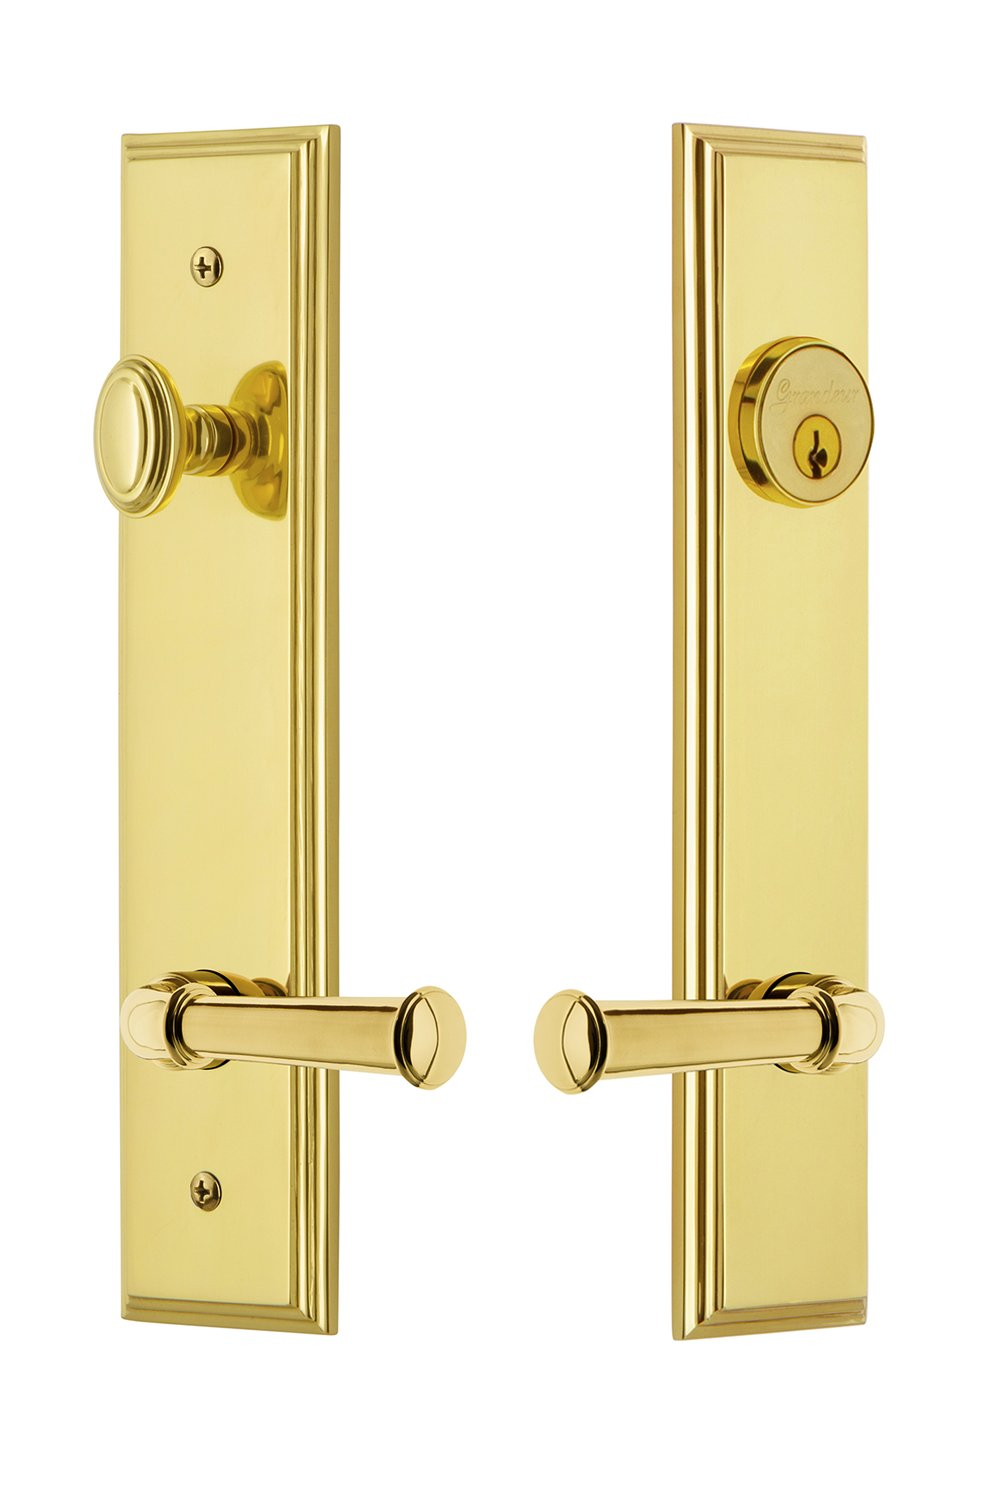 2.75 Polished Nickel Grandeur Hardware 841359 Carre Tall Plate Complete Entry Set with Georgetown Lever Backset Size